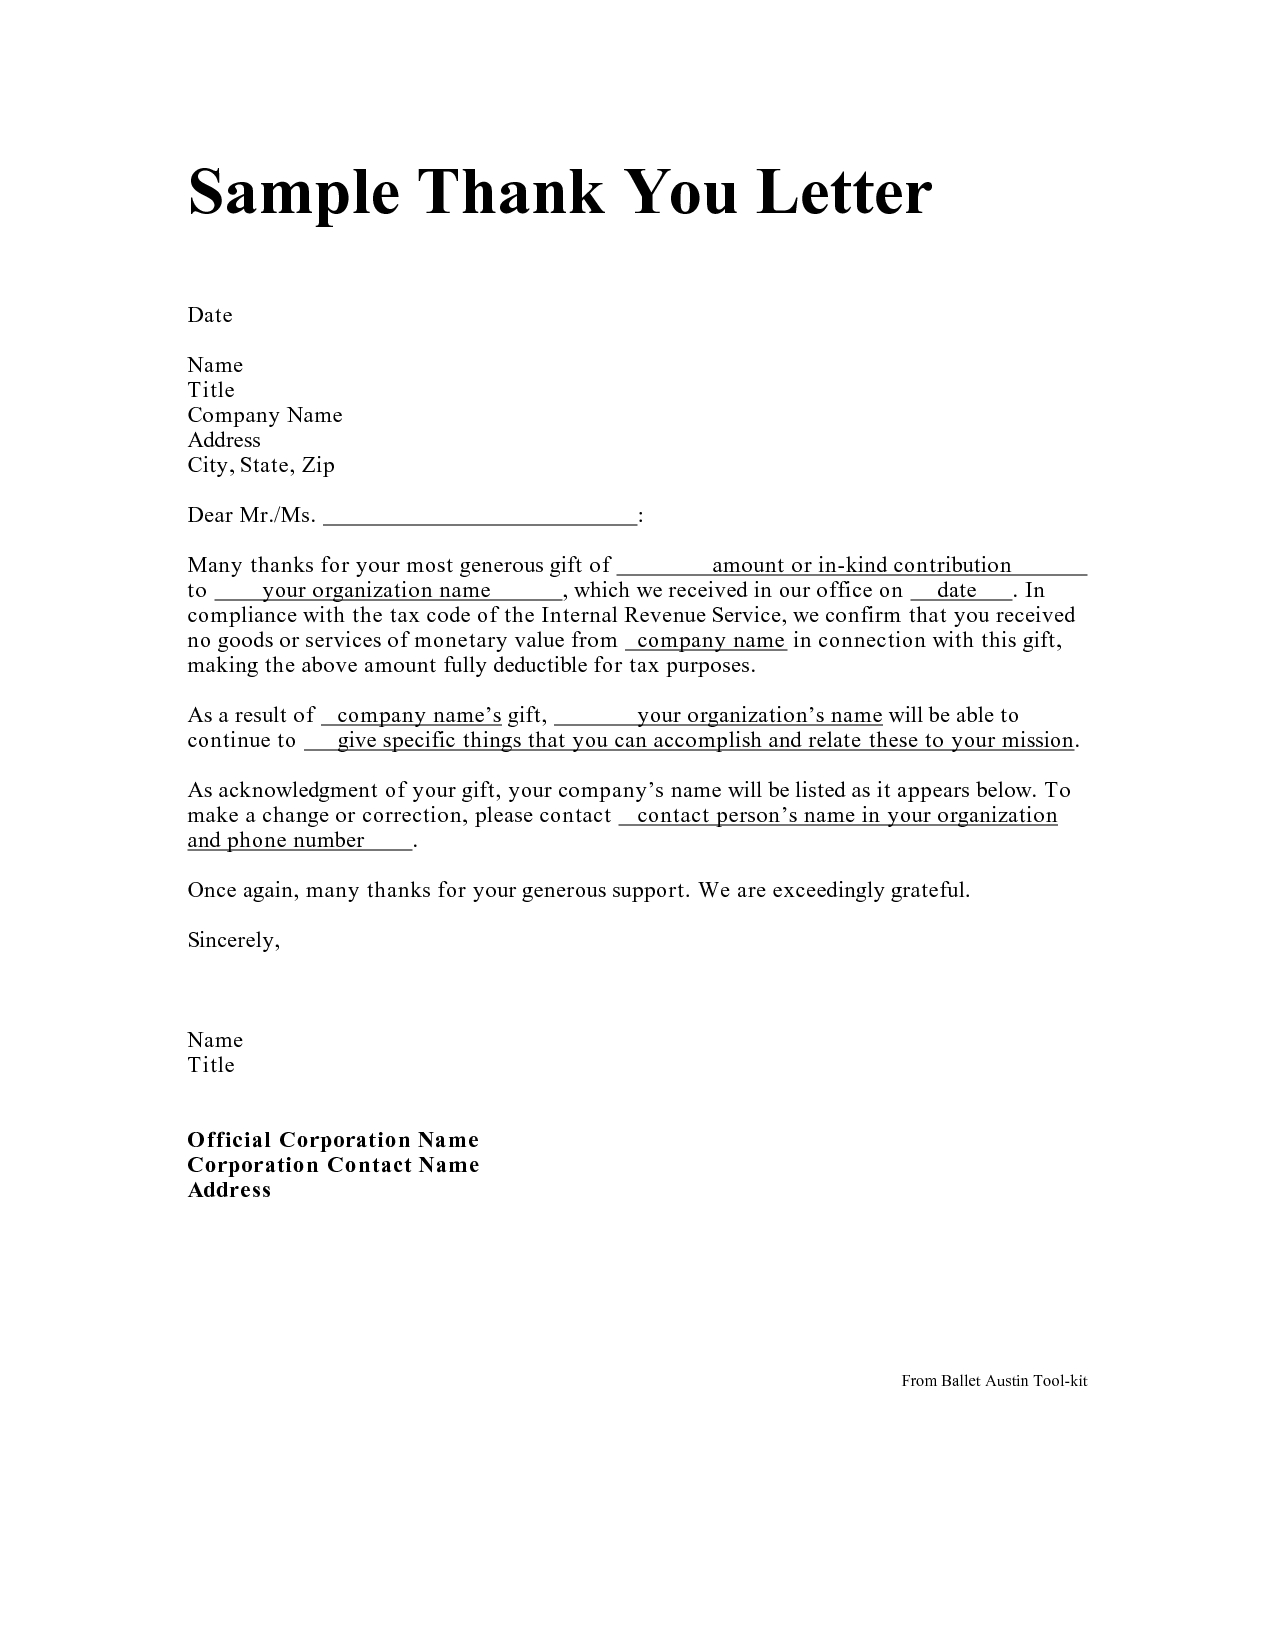 Veteran Thank You Letter Template - Personal Thank You Letter Personal Thank You Letter Samples